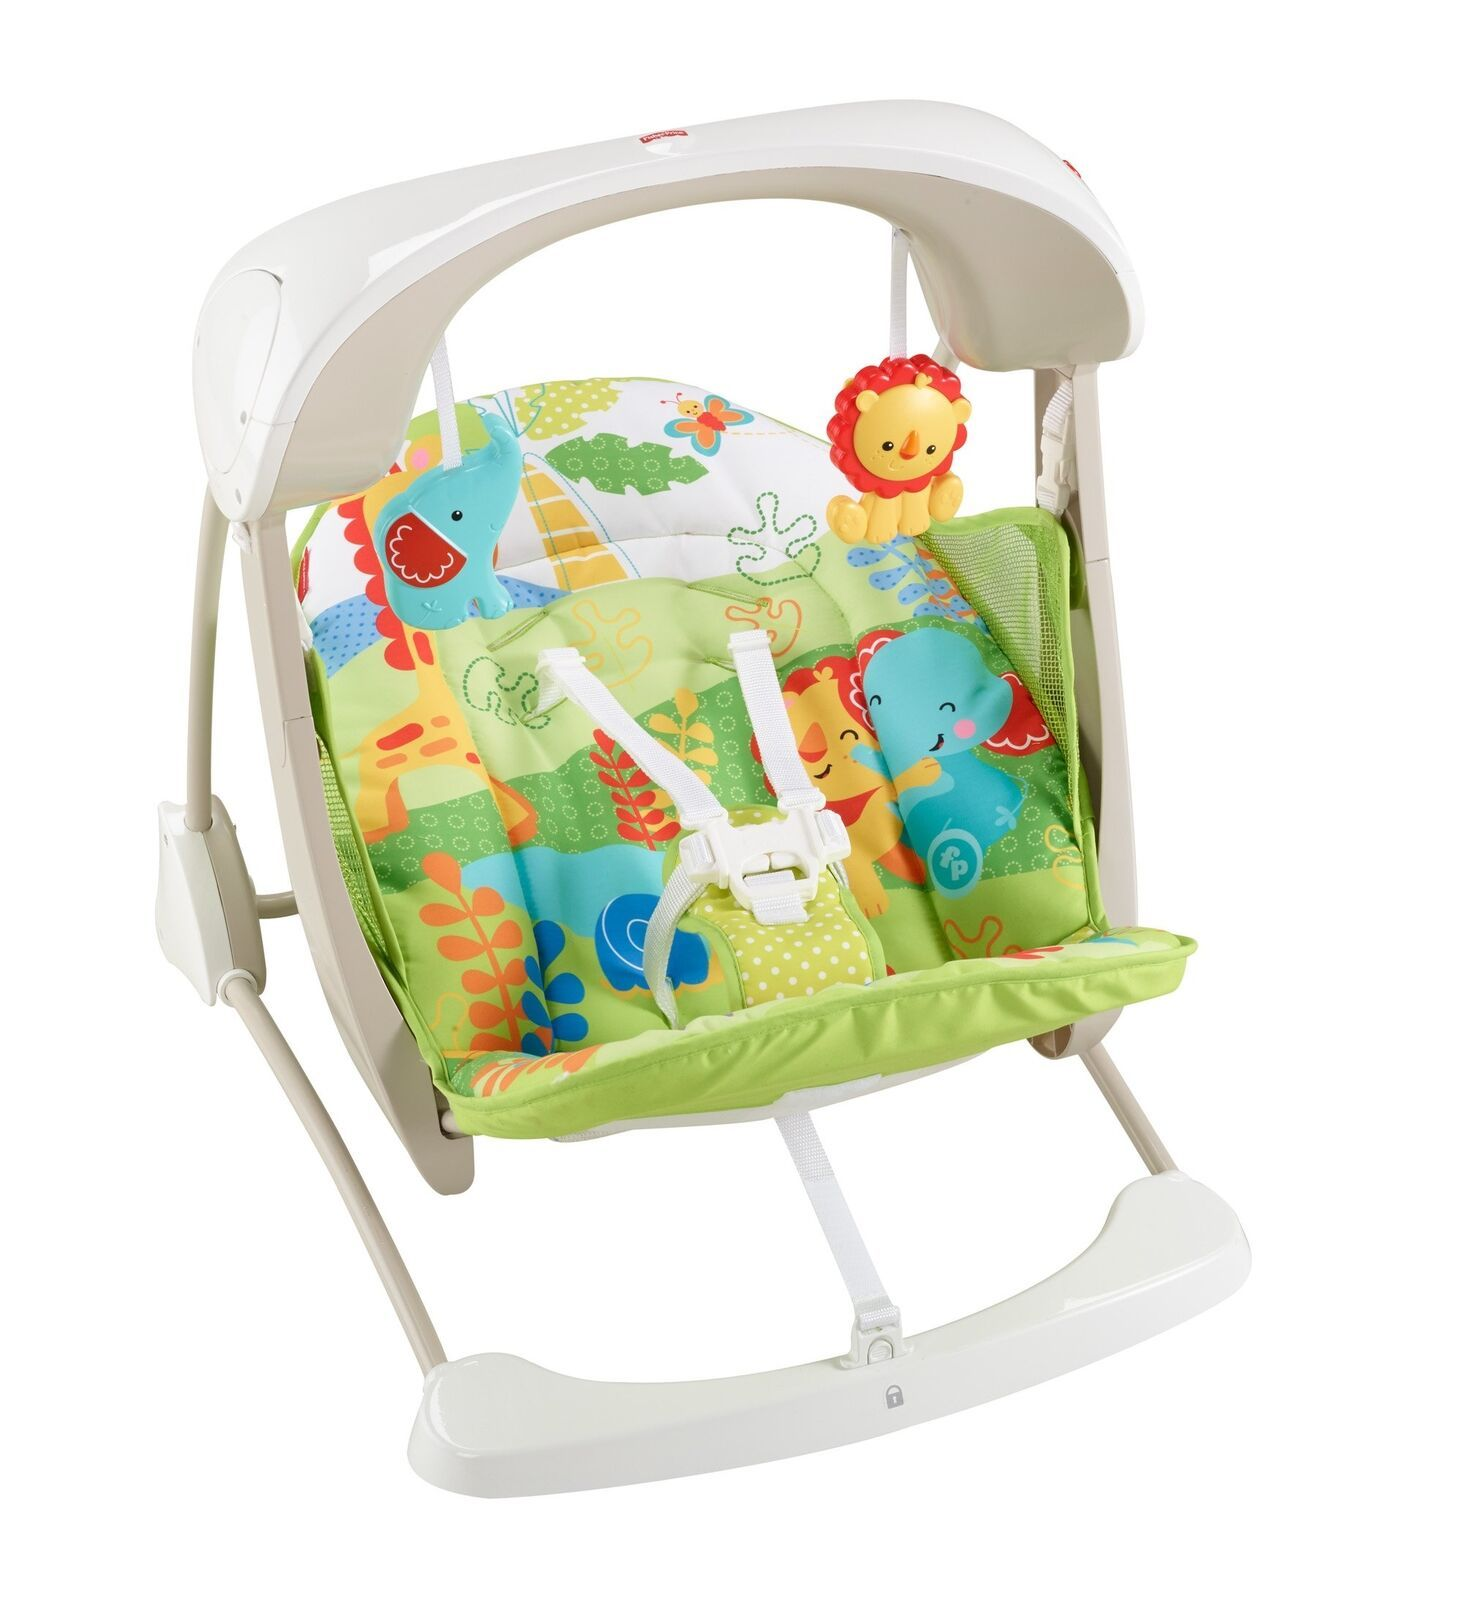 Details About Fisher Price Take Along Swing And Seat